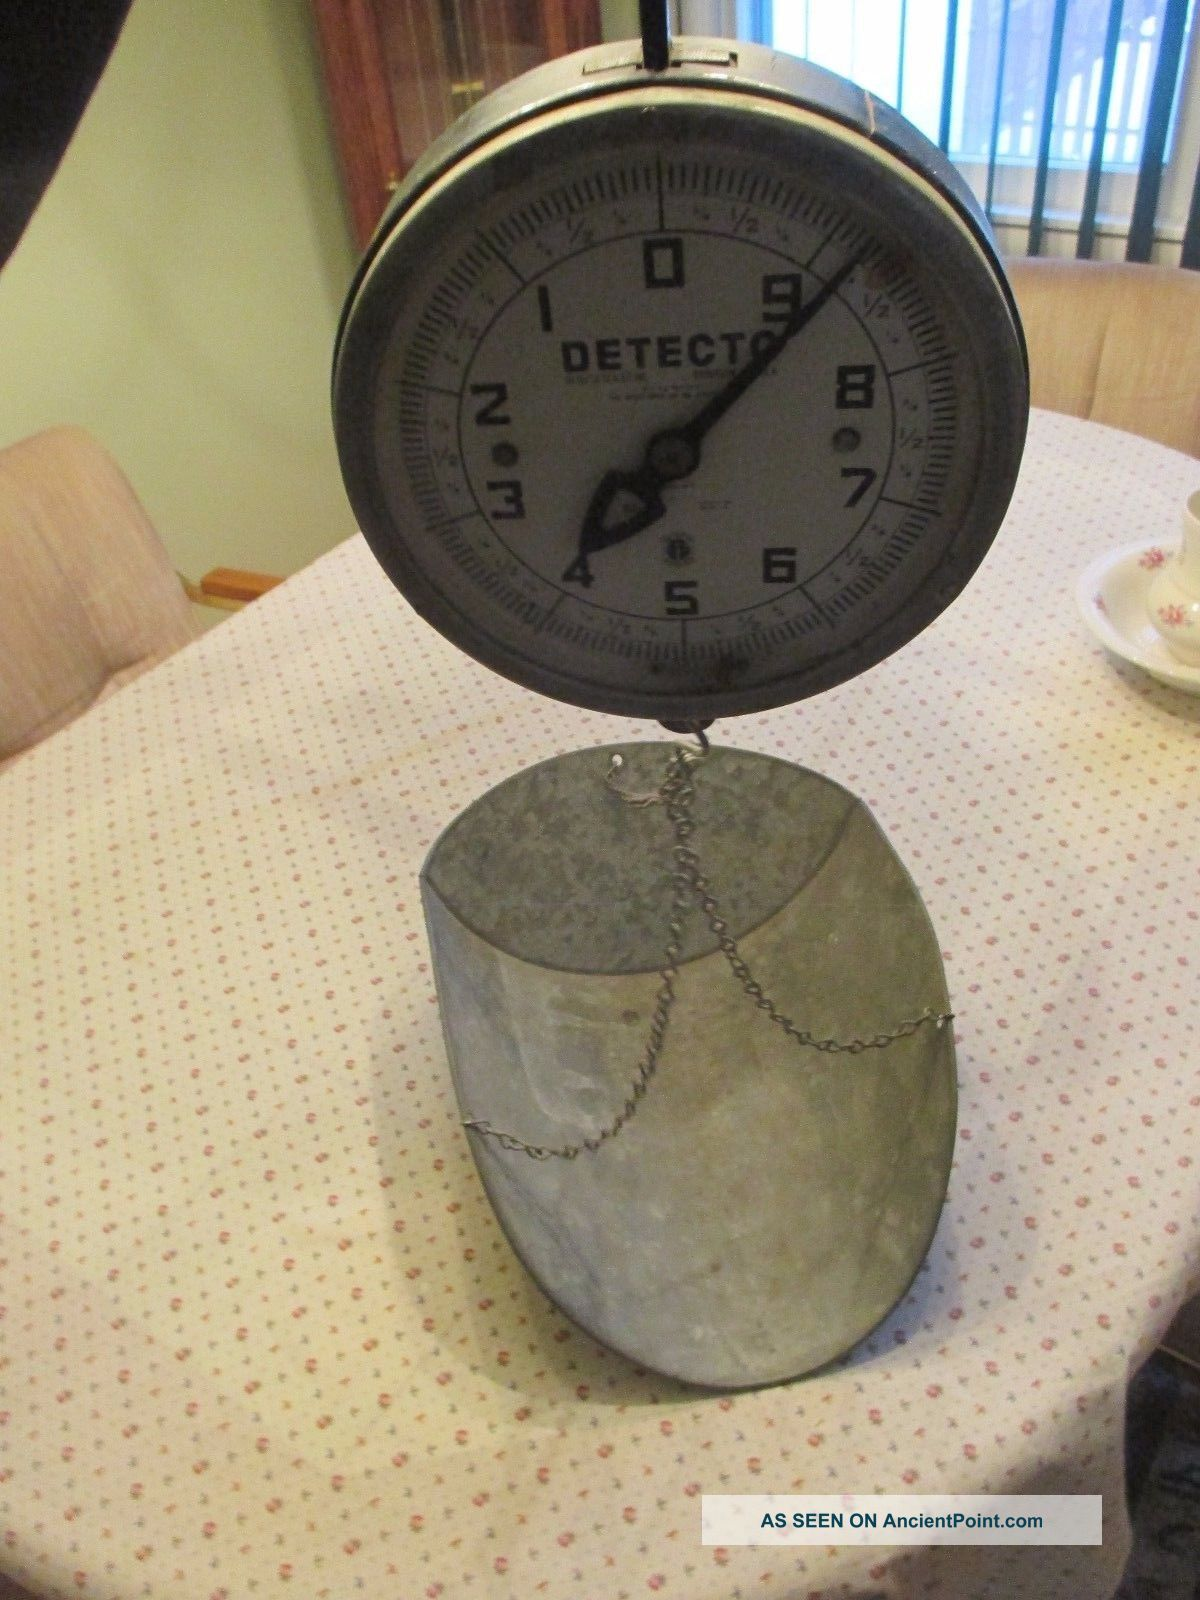 Vintage Detecto 20 Lb Hanging Scale 26 S With Metal Basket Scales photo